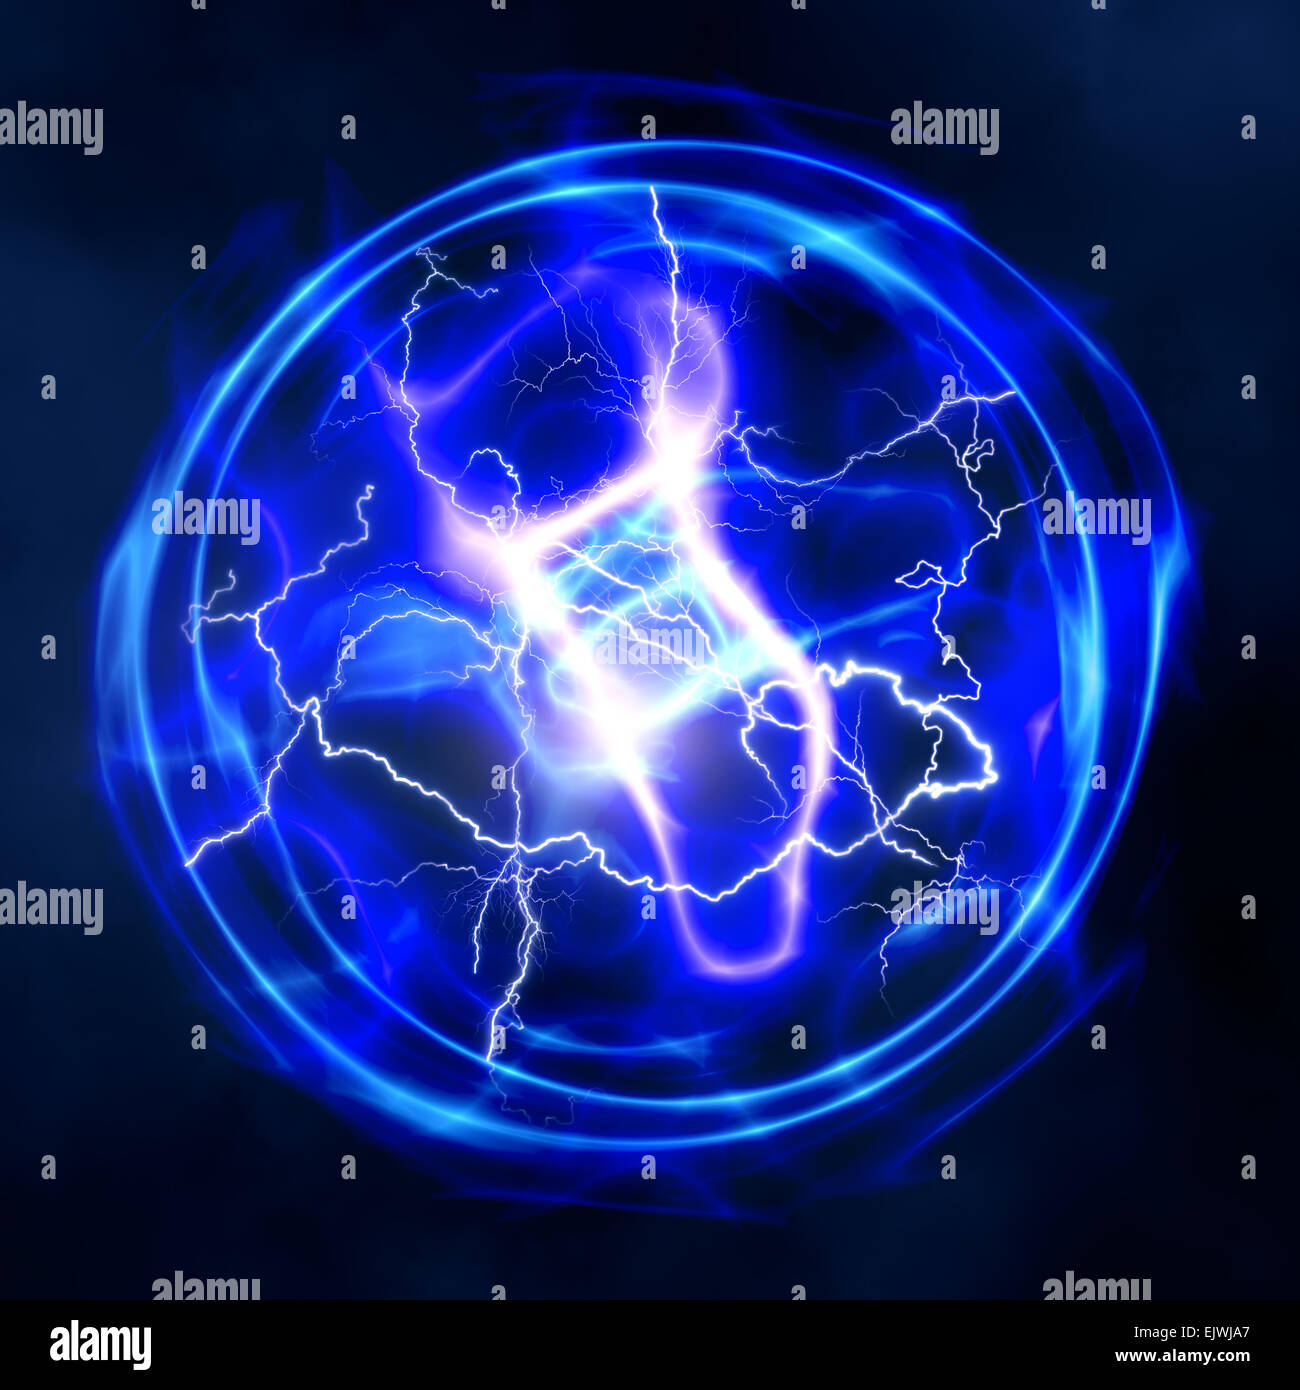 Electricity Backgrounds Stock Photos Glass On The Electronic Schematic Diagramideal Technology Background Abstract Power And For Your Design Image